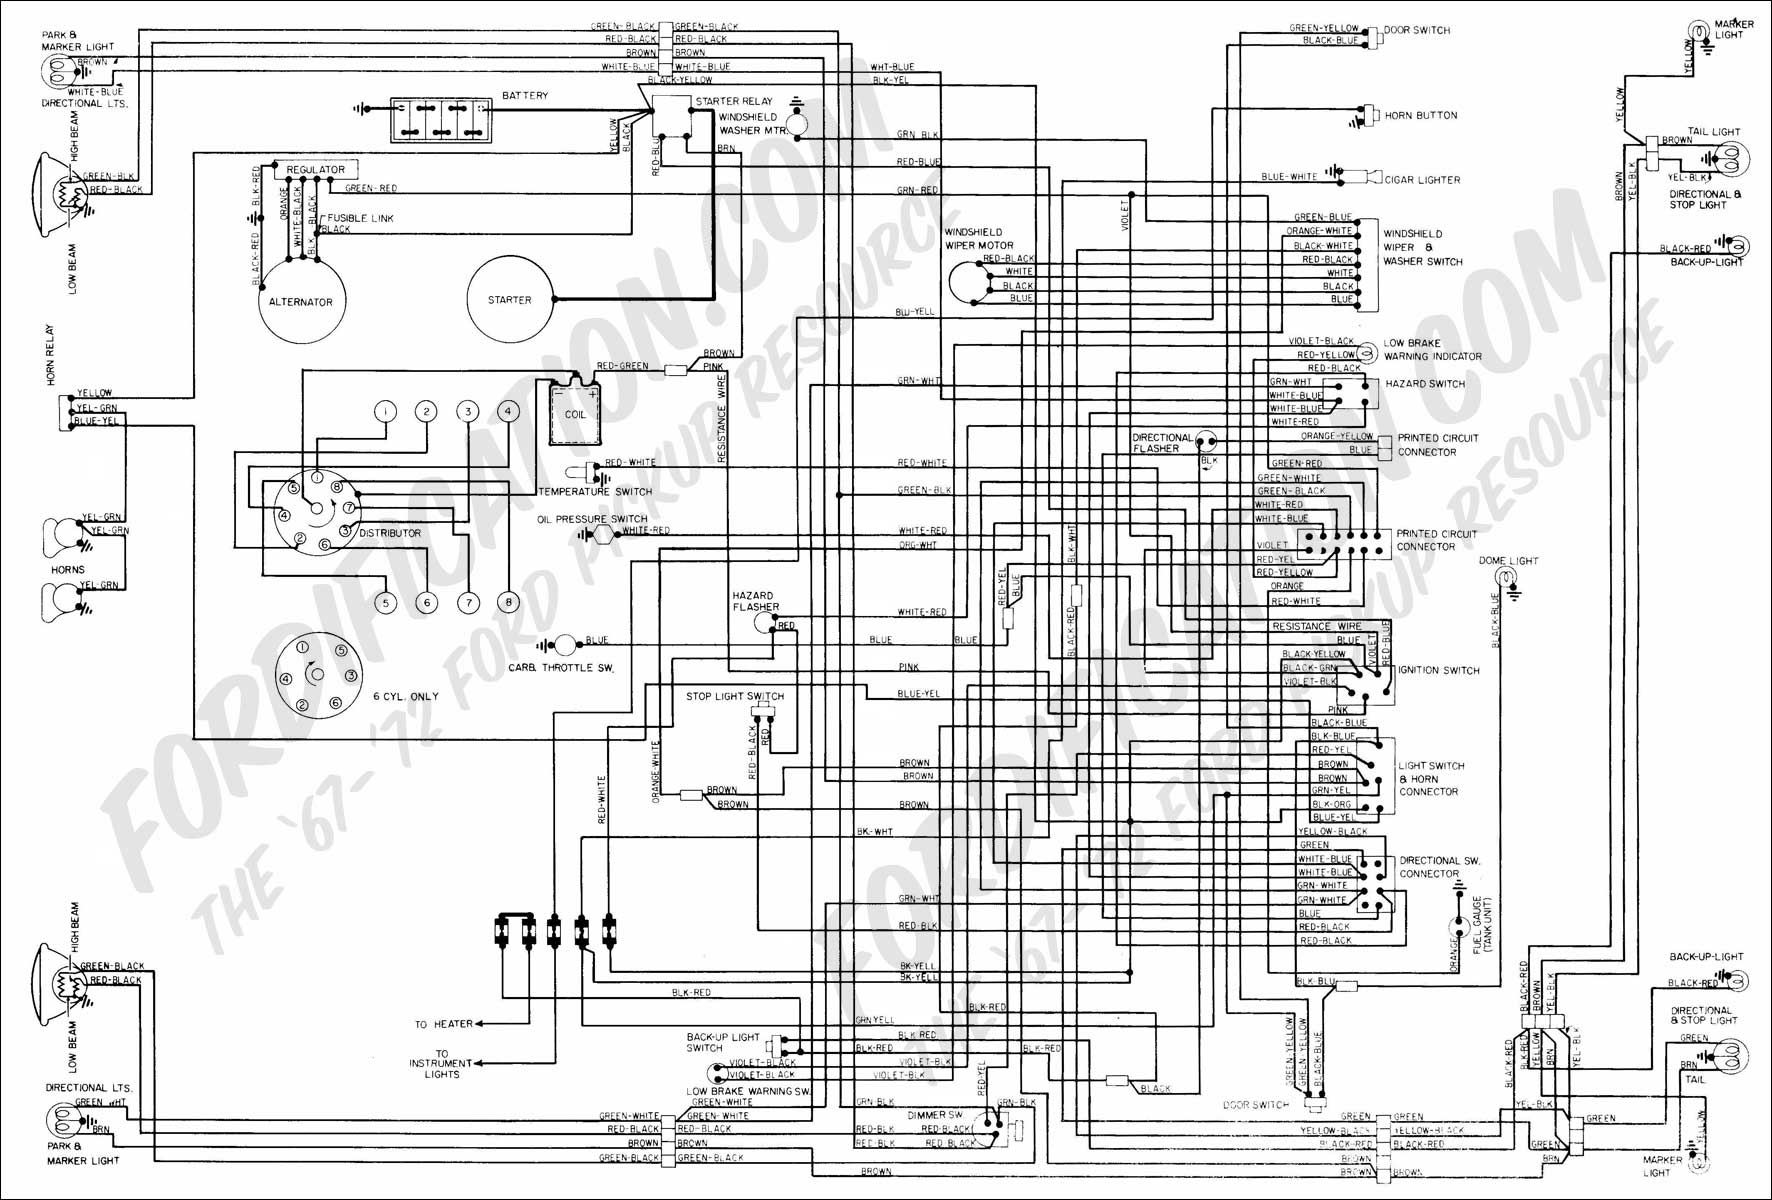 hight resolution of 2007 ford f150 wiring diagram data wiring diagram 2007 ford expedition wiring diagram 2007 f150 wiring